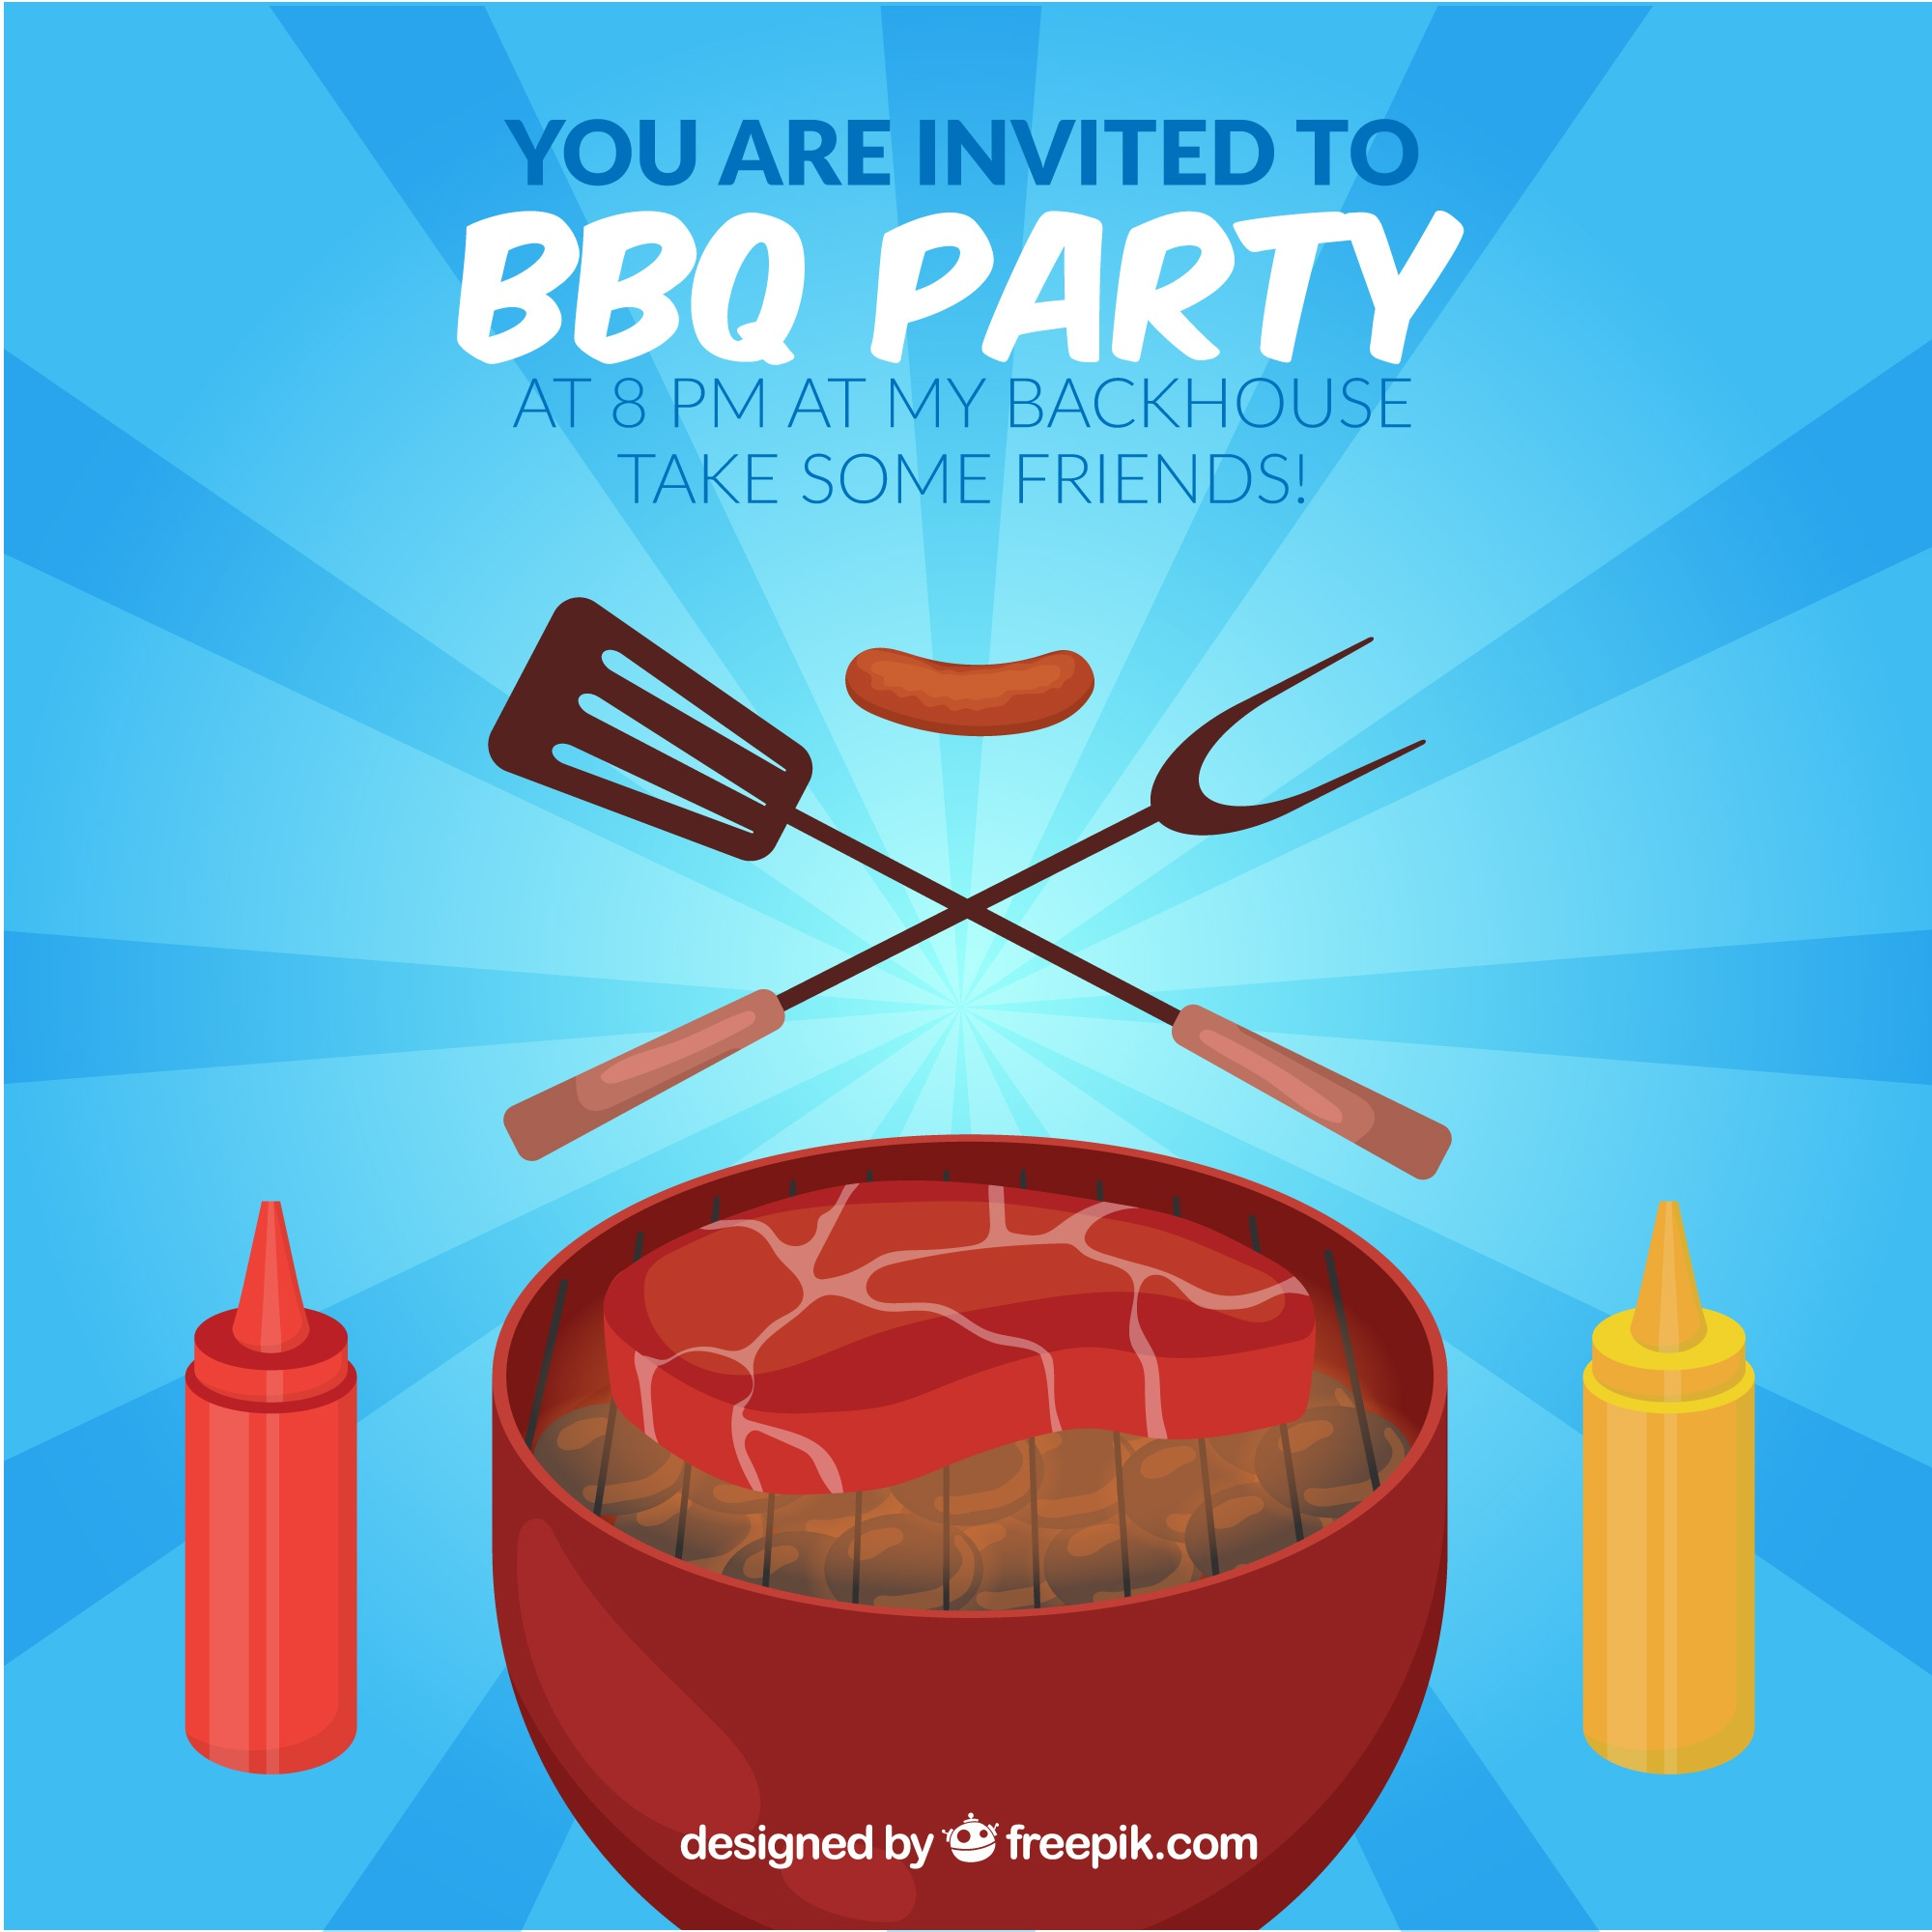 Bbq party invitation with grill